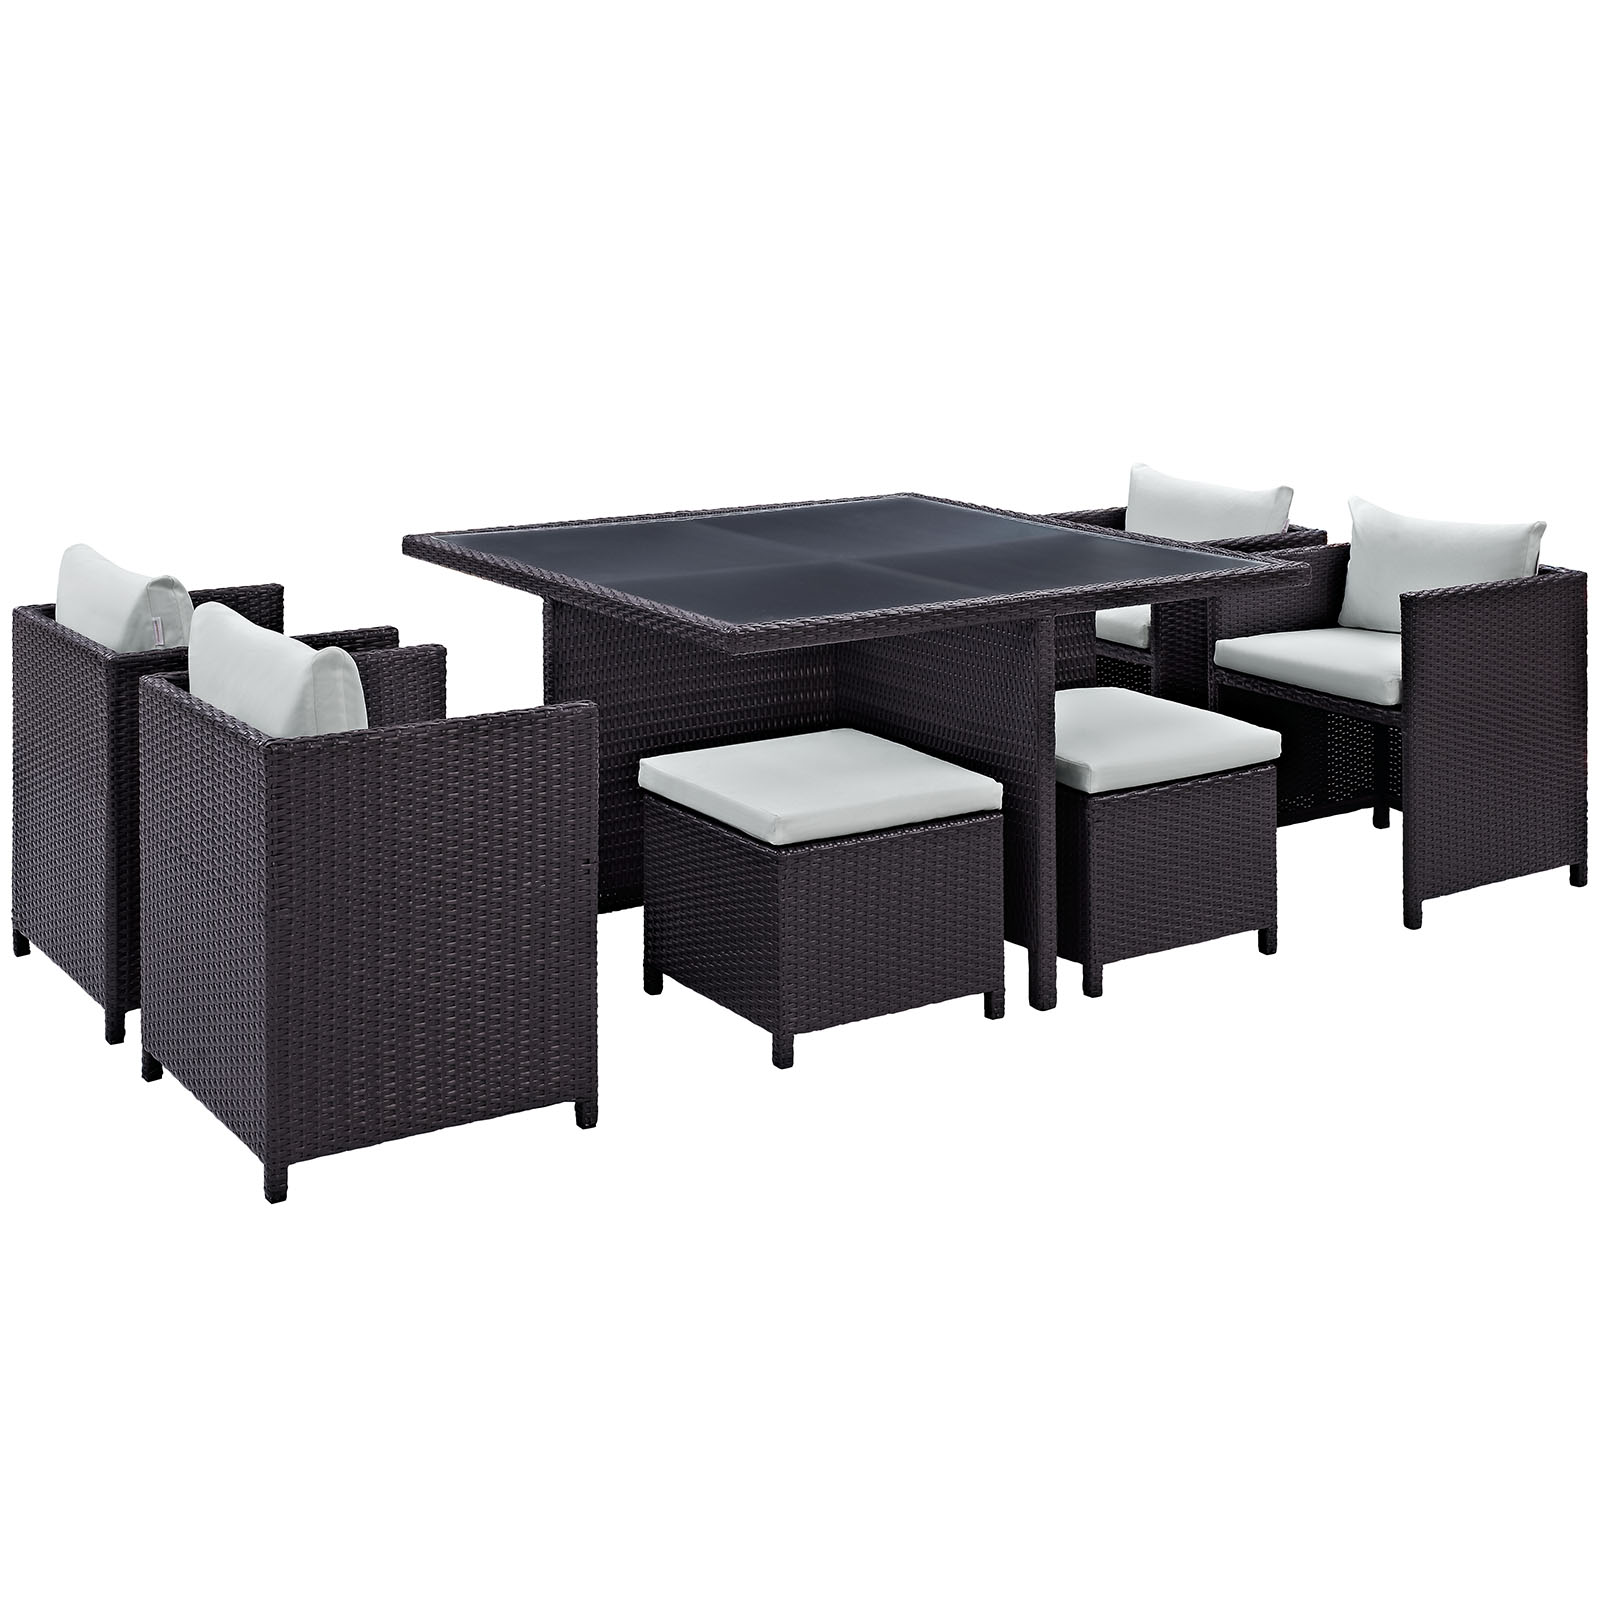 Modern Contemporary 9 Pcs Outdoor Patio Dining Set, White Plastic